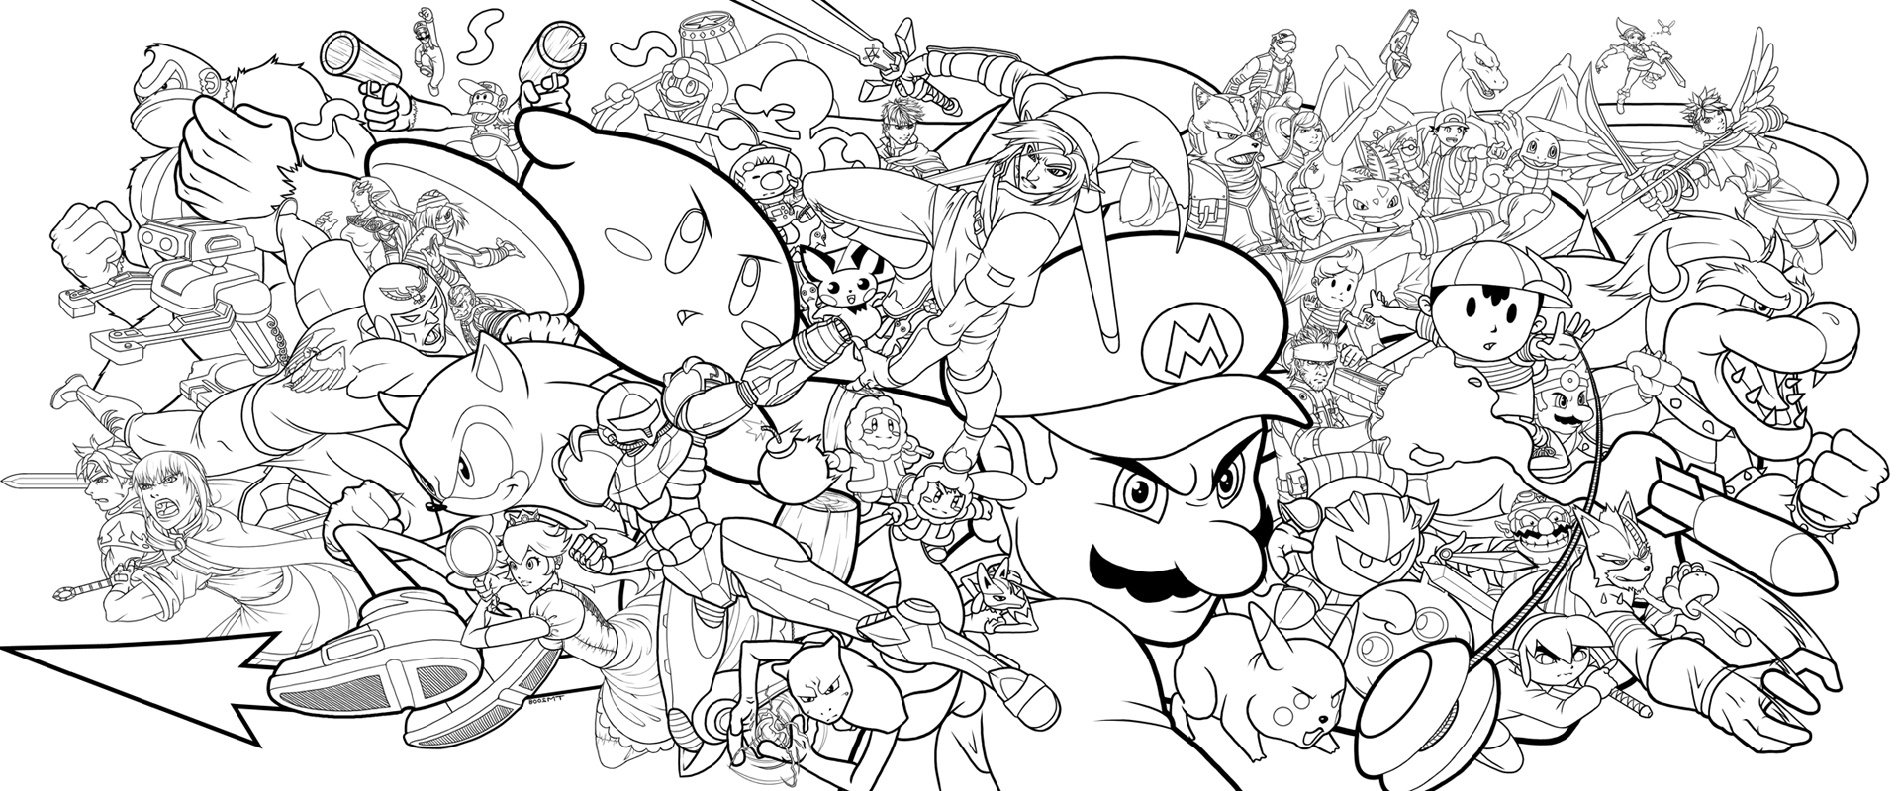 Super Smash Bros Coloring Pages Printable